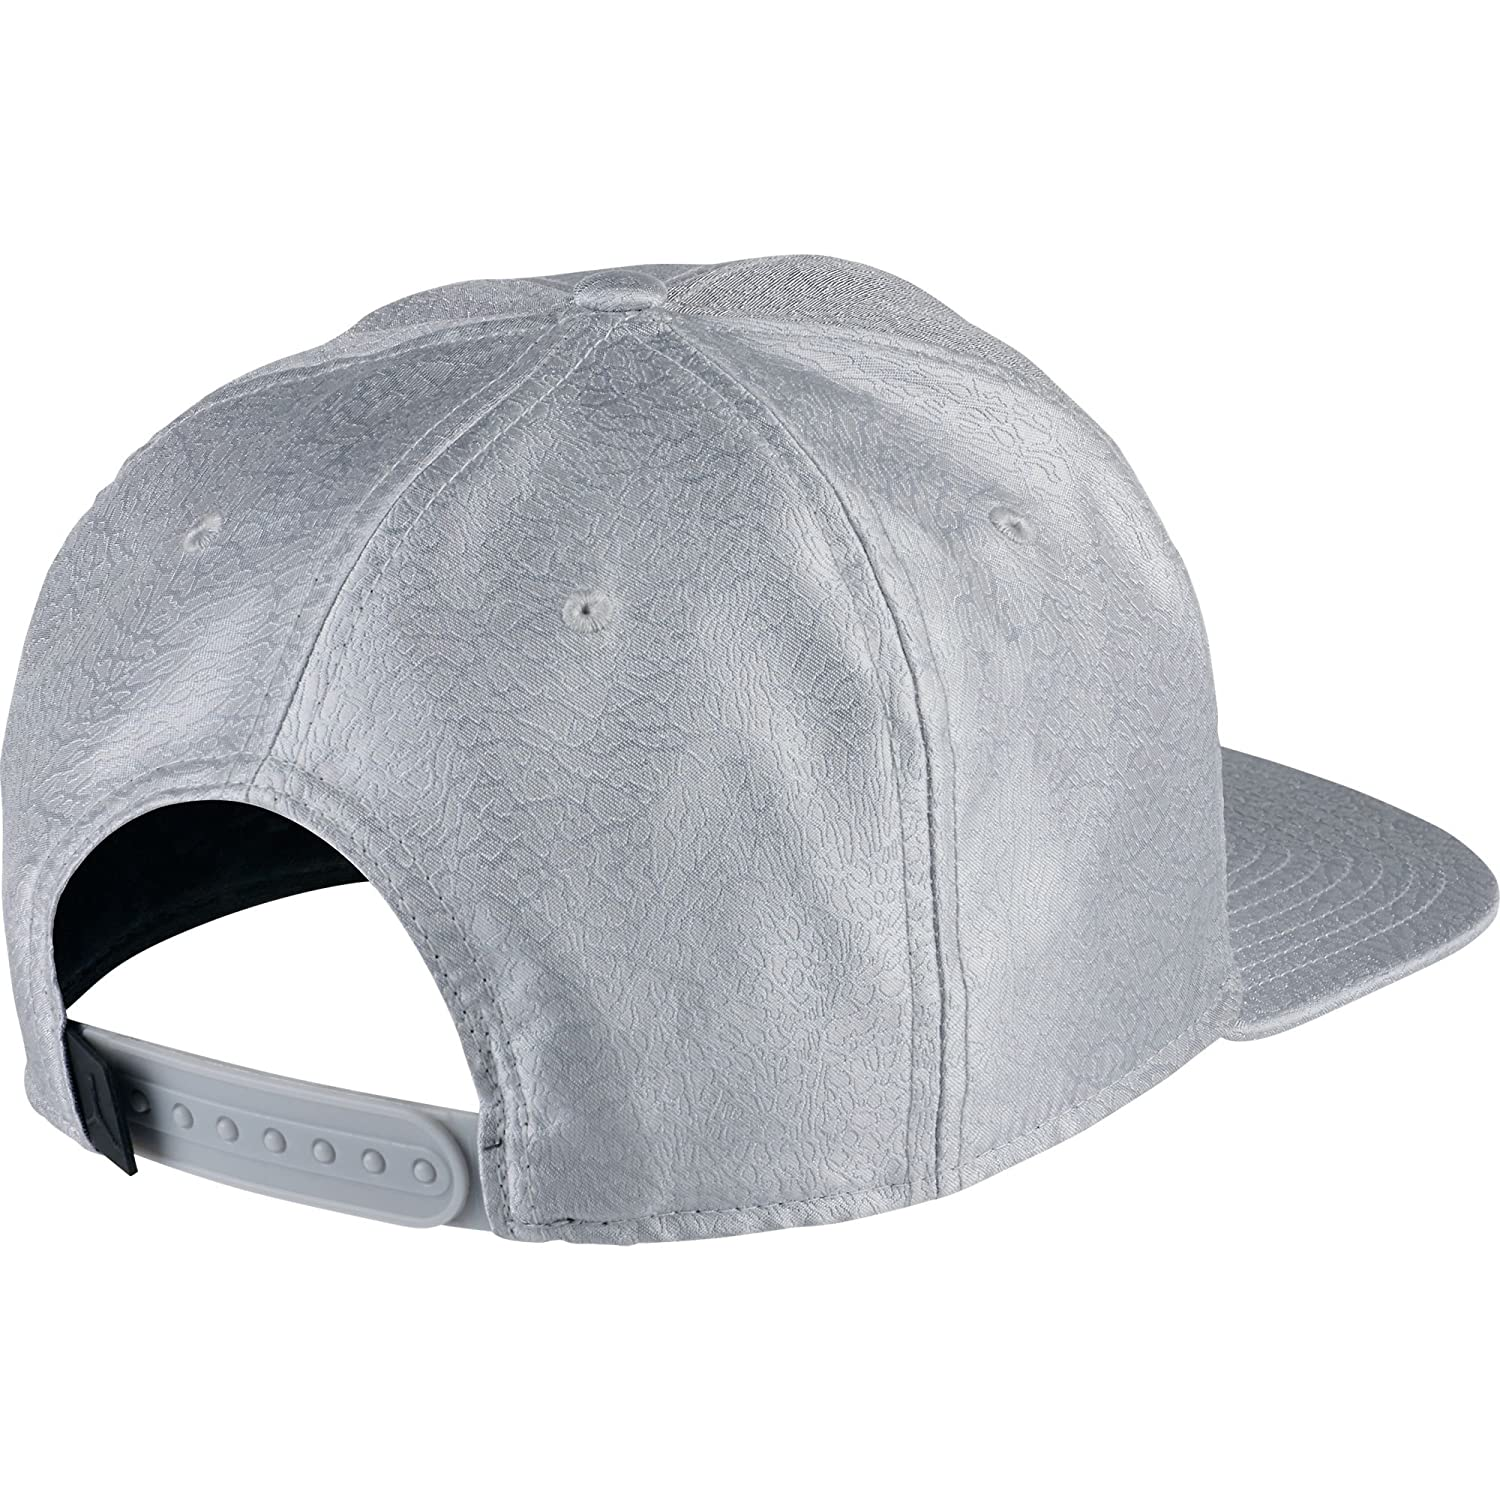 c7b6b341c643b8 ... spain amazon jordan jumpman elephant ignot pro mens snapback hat cap  wolf grey ah1576 012 size